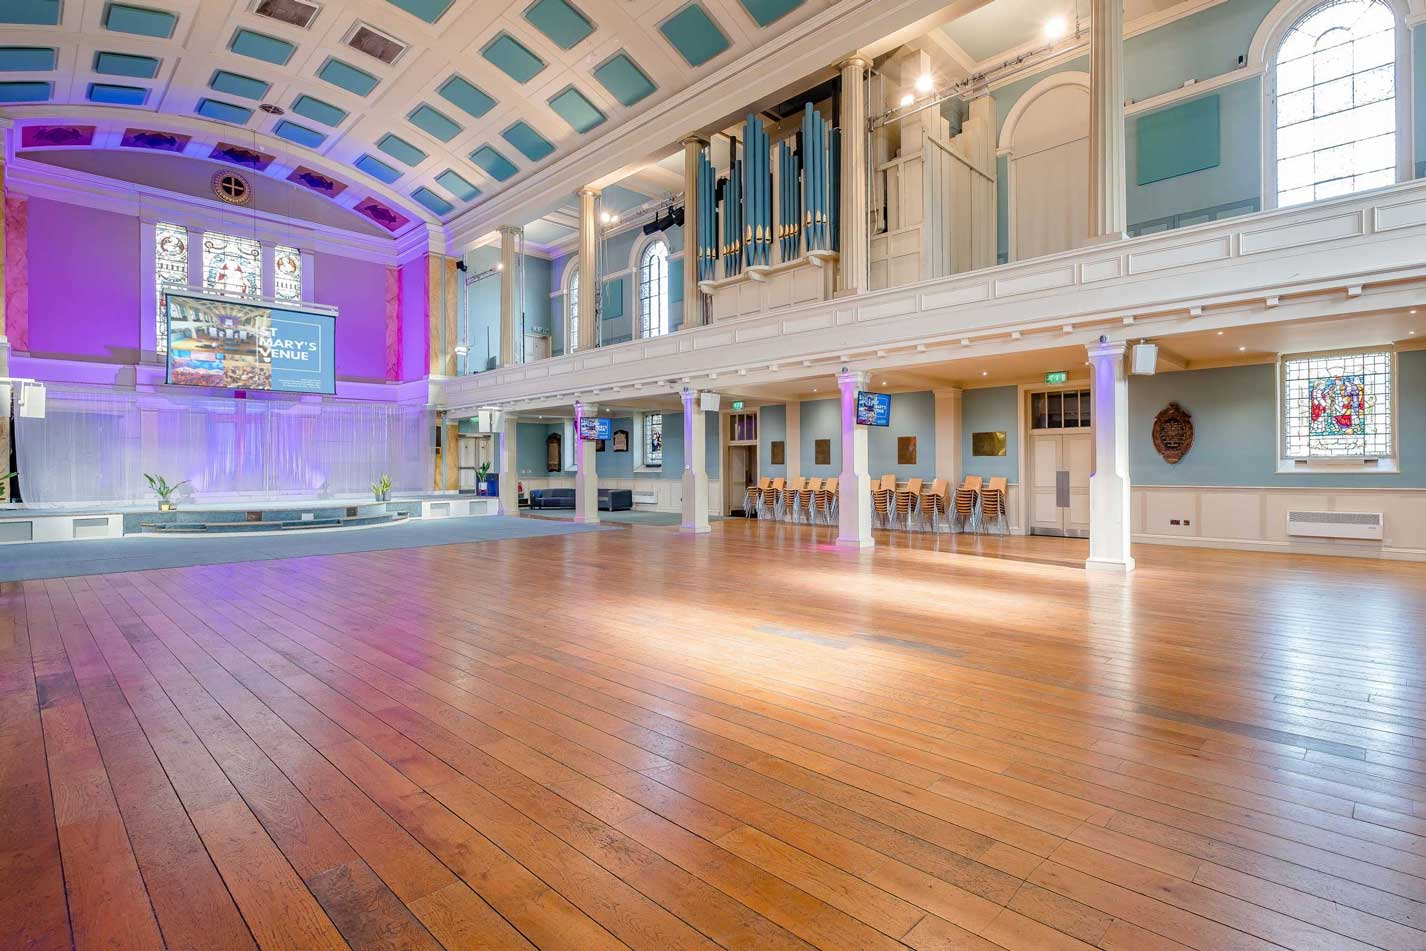 image of the main auditorium at St Mary's Venue Hire with organ and main stage